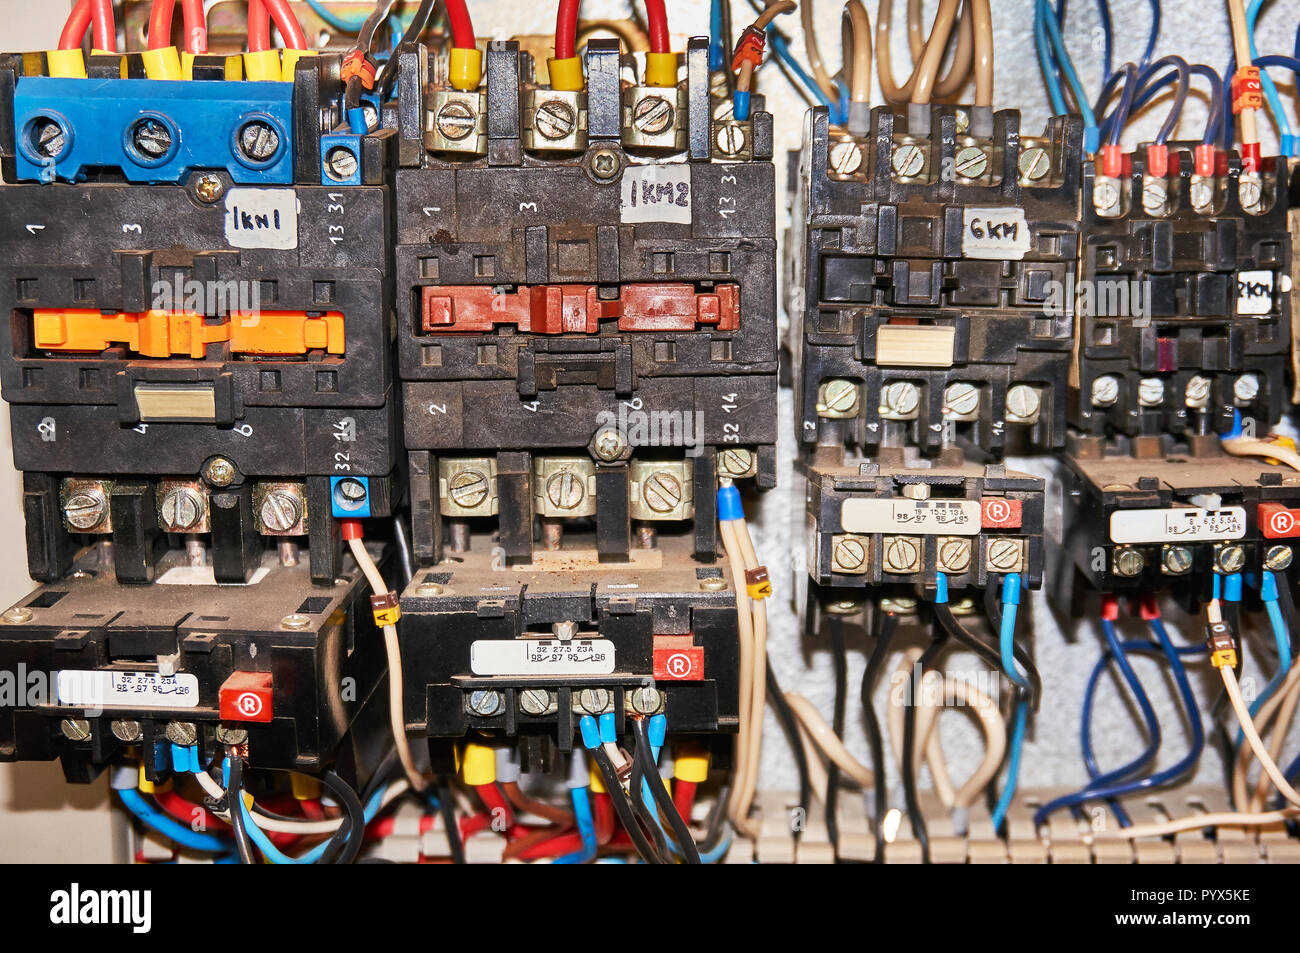 Electrical Relay Switch Stock Photos Normally Open Schematic Some Is Mounted On The Mounting Panel Relays Inserted In Base Or